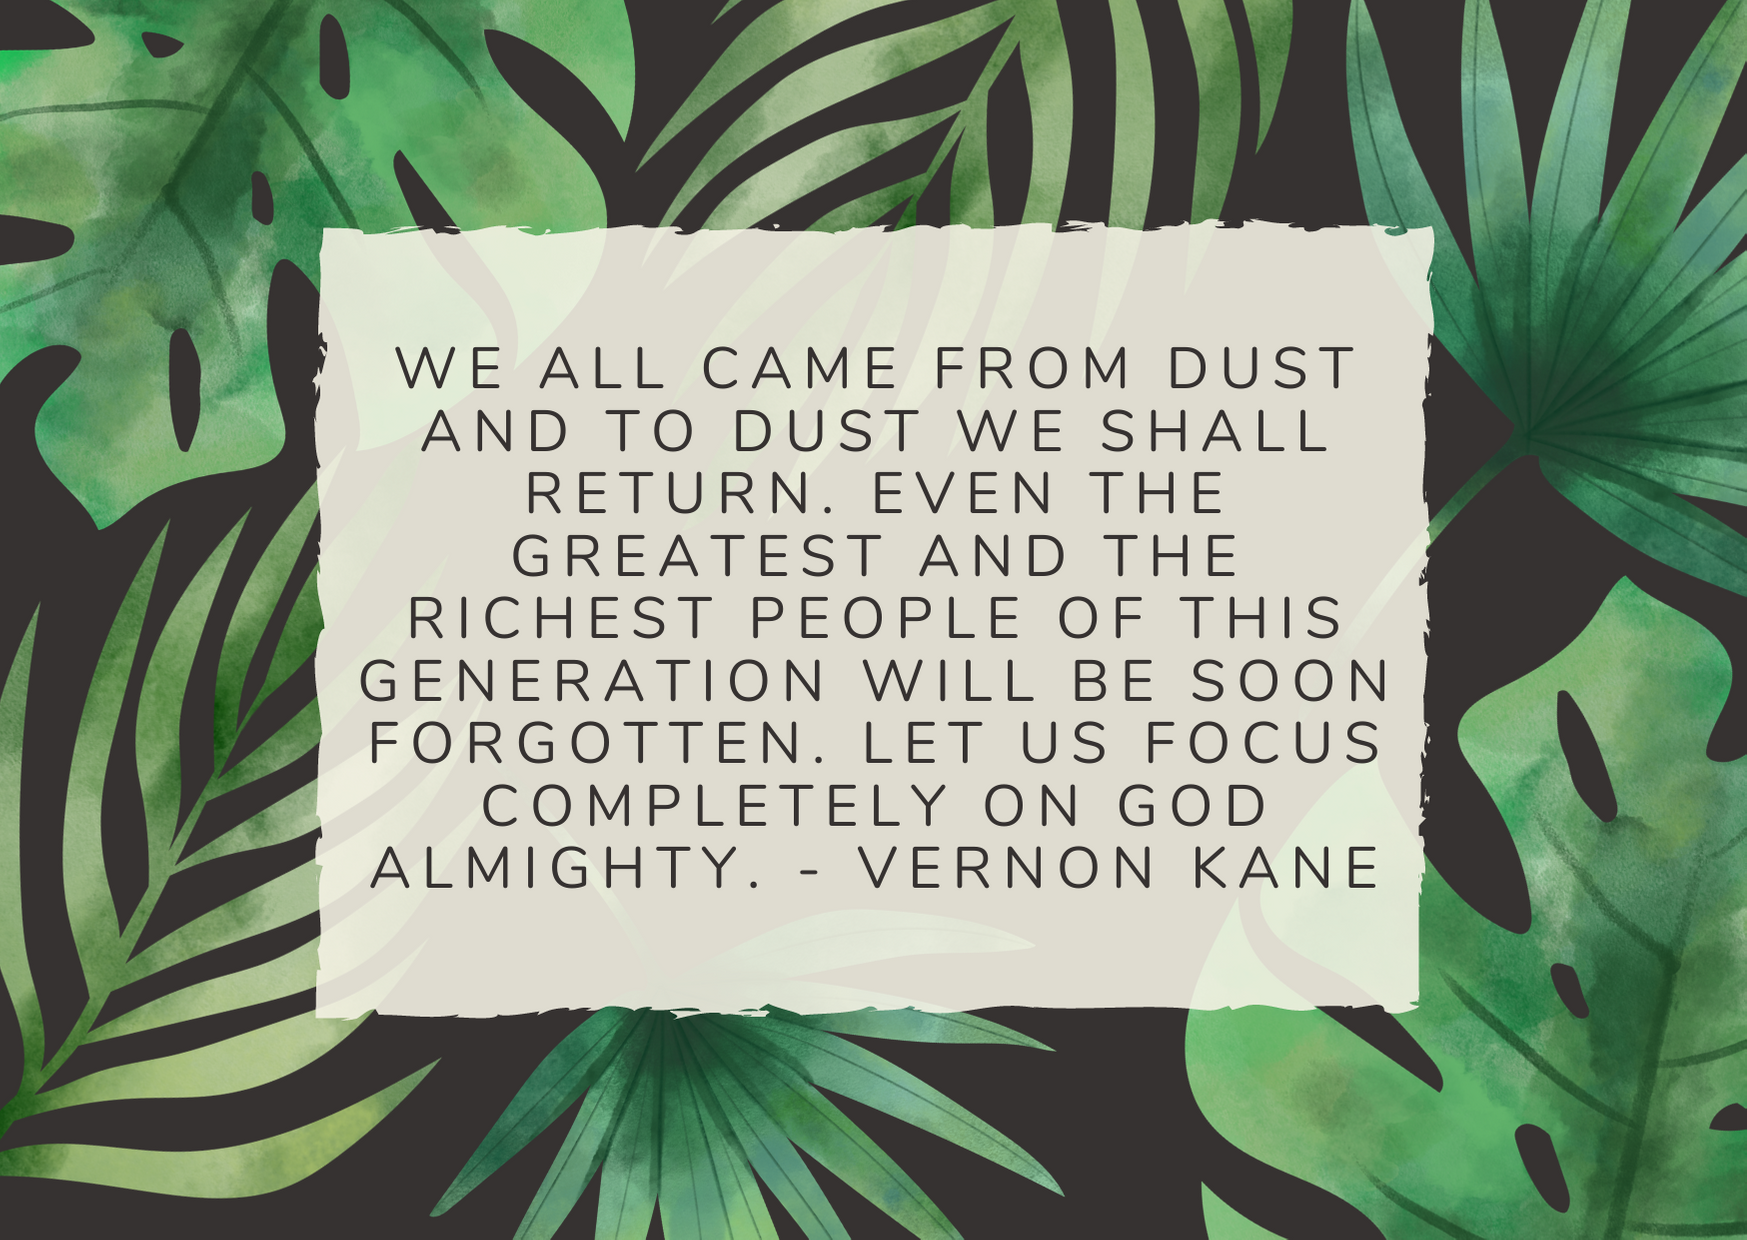 We all came from dust and to dust we shall return. Even the greatest and the richest people of this generation will be soon forgotten. Let us focus completely on God almighty. - Vernon Kane